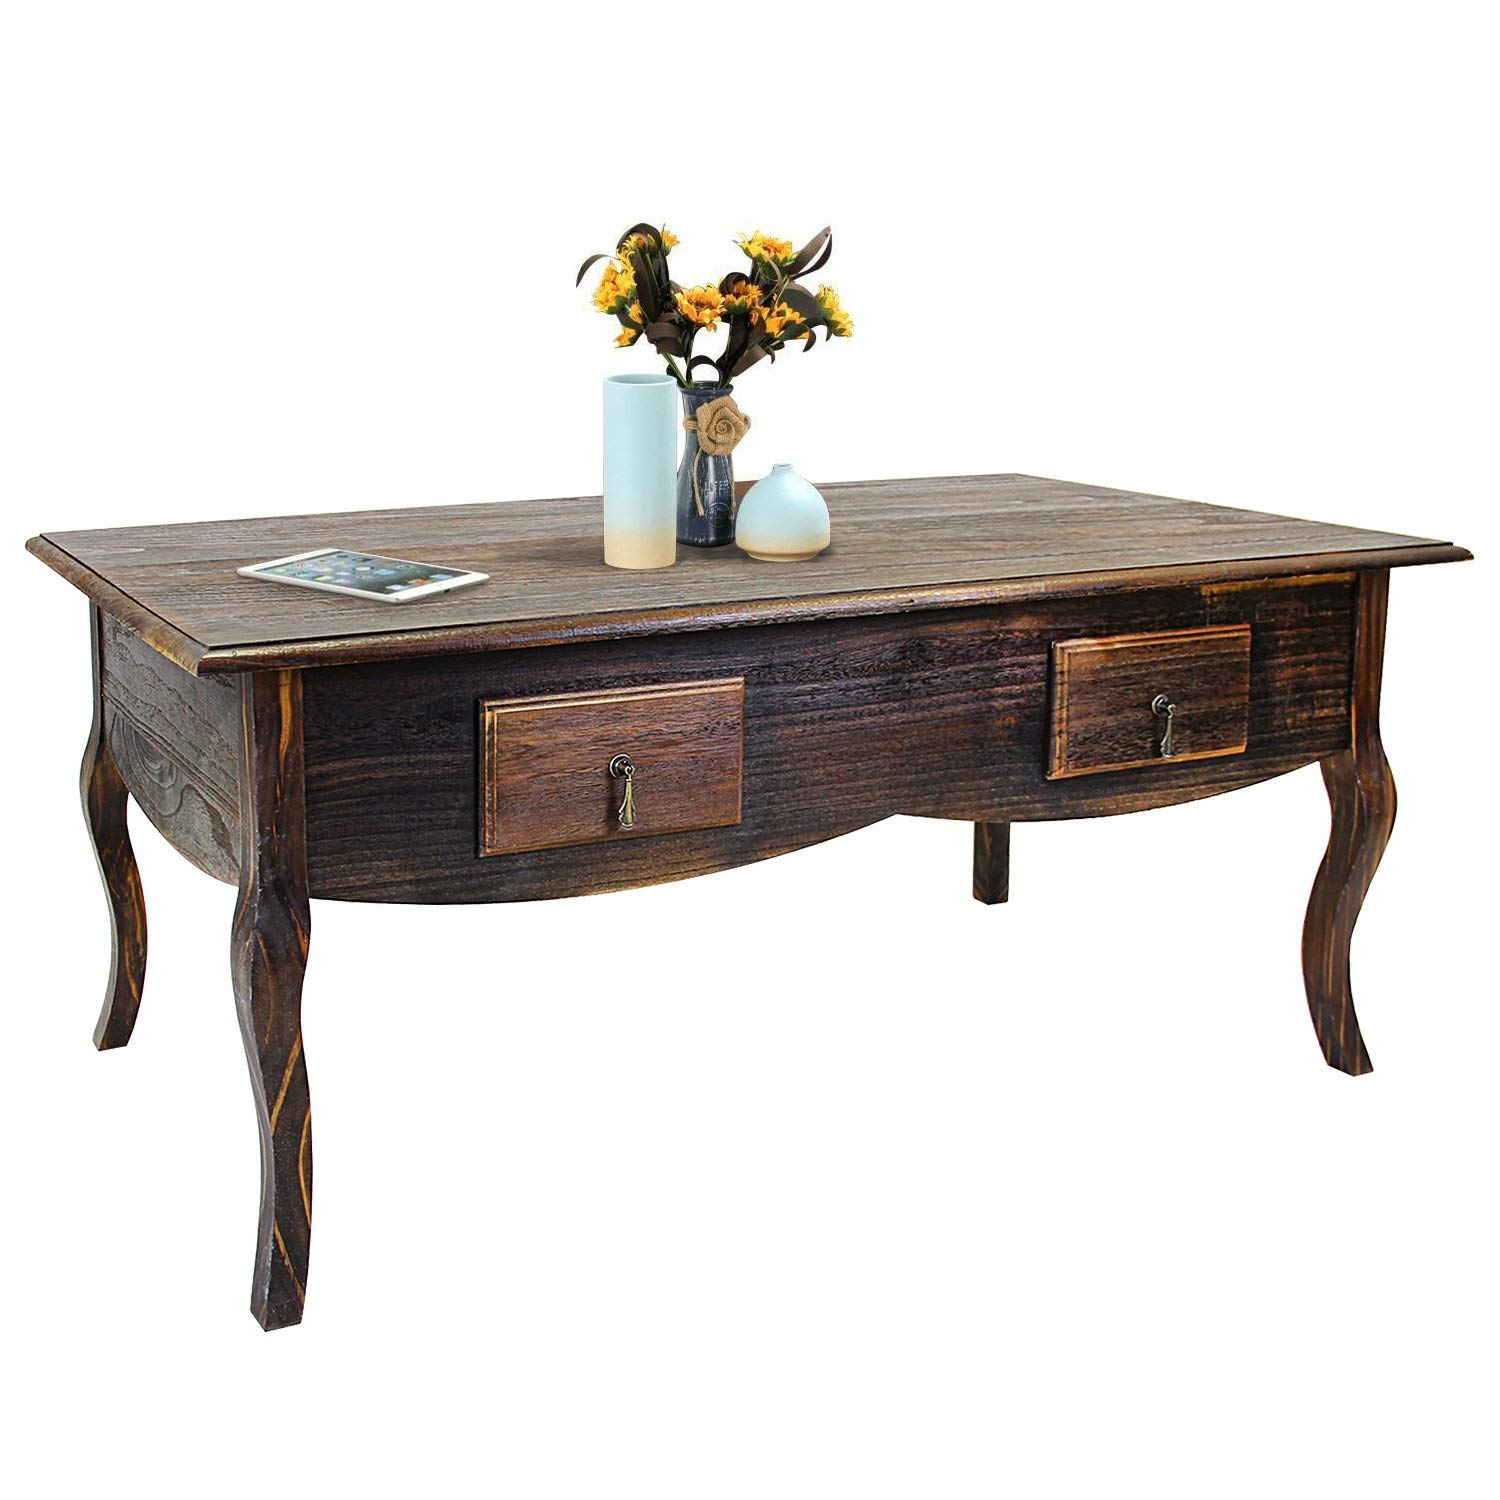 Jerry & Maggie - 1 Tier Wood Tea Coffee Desk Table With 4 drawer - Smooth Surface Ancient Style Tea Dinner Table Great for Living room & Office - Dark Natural Wood Tone